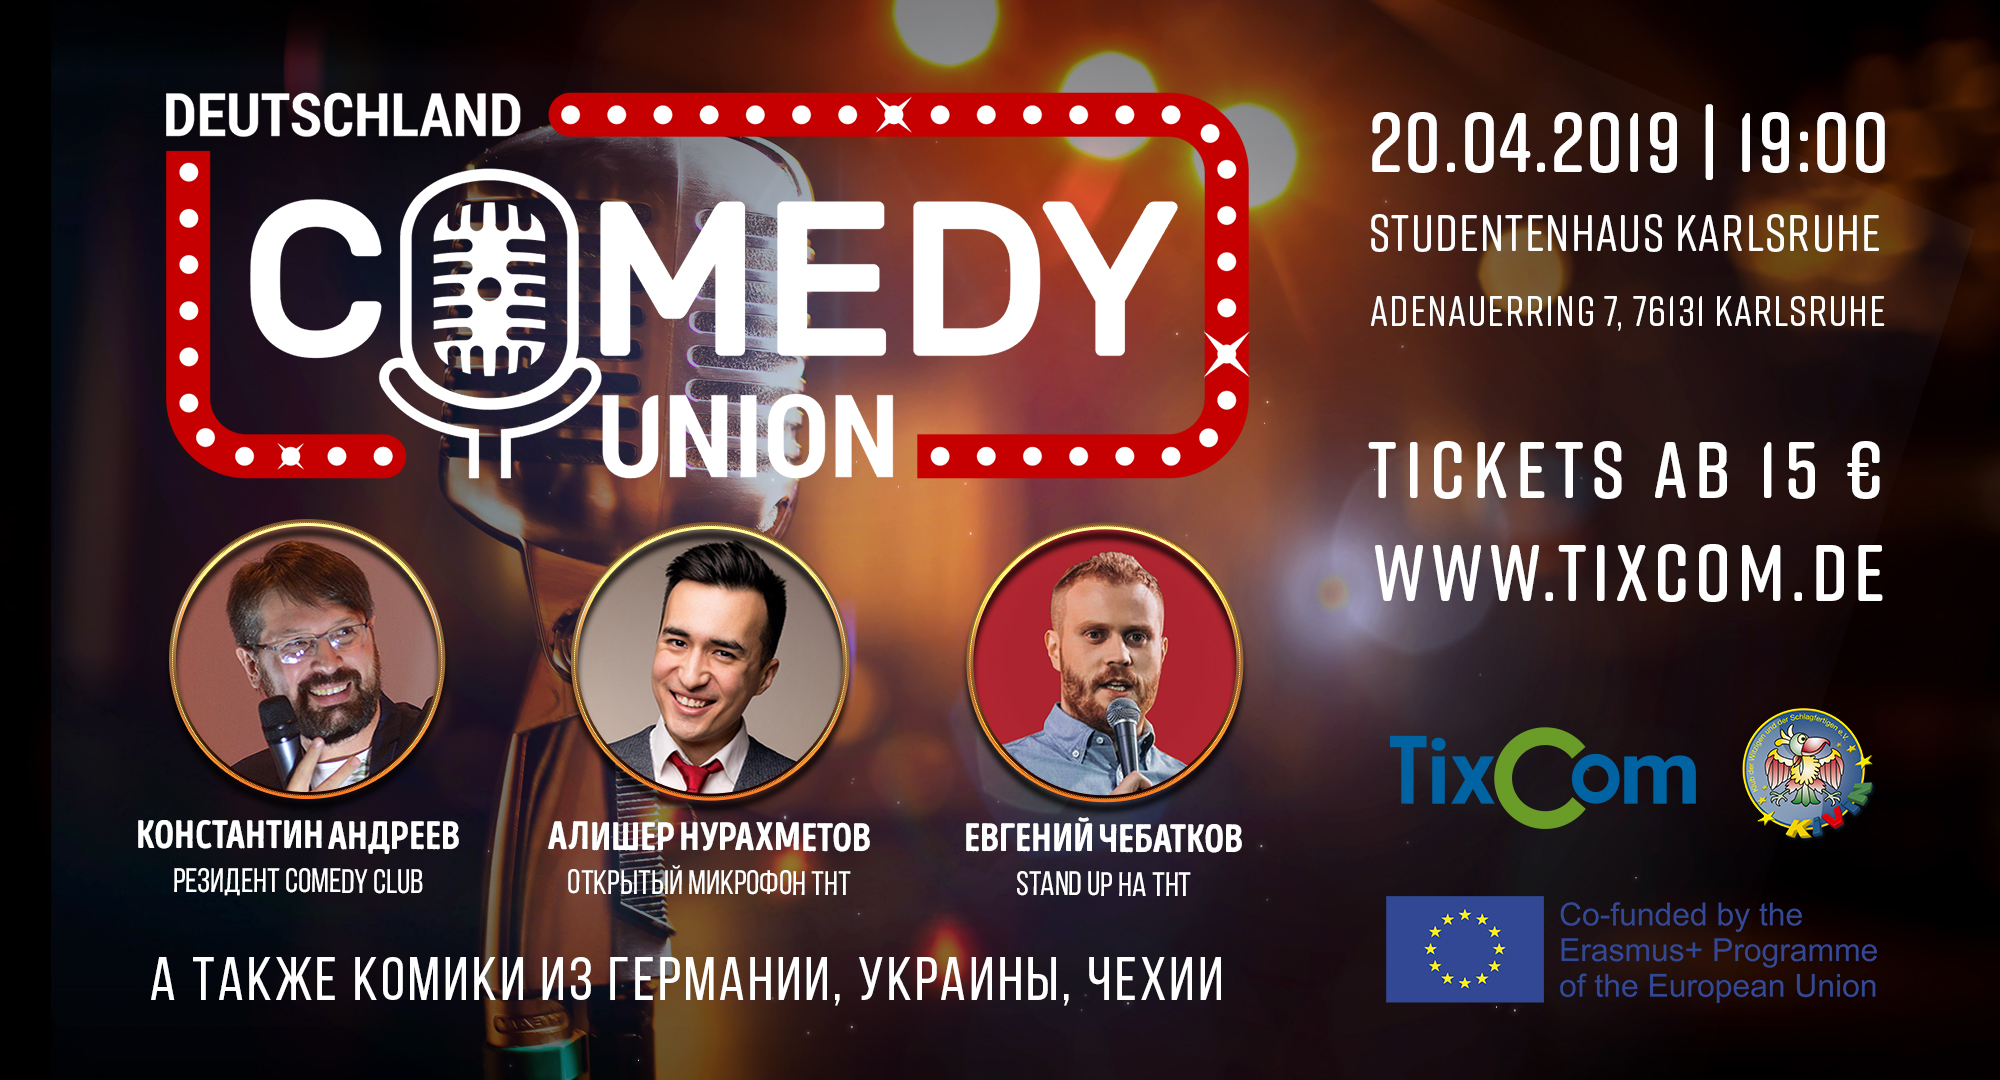 Comedy Union am 20.04.2019